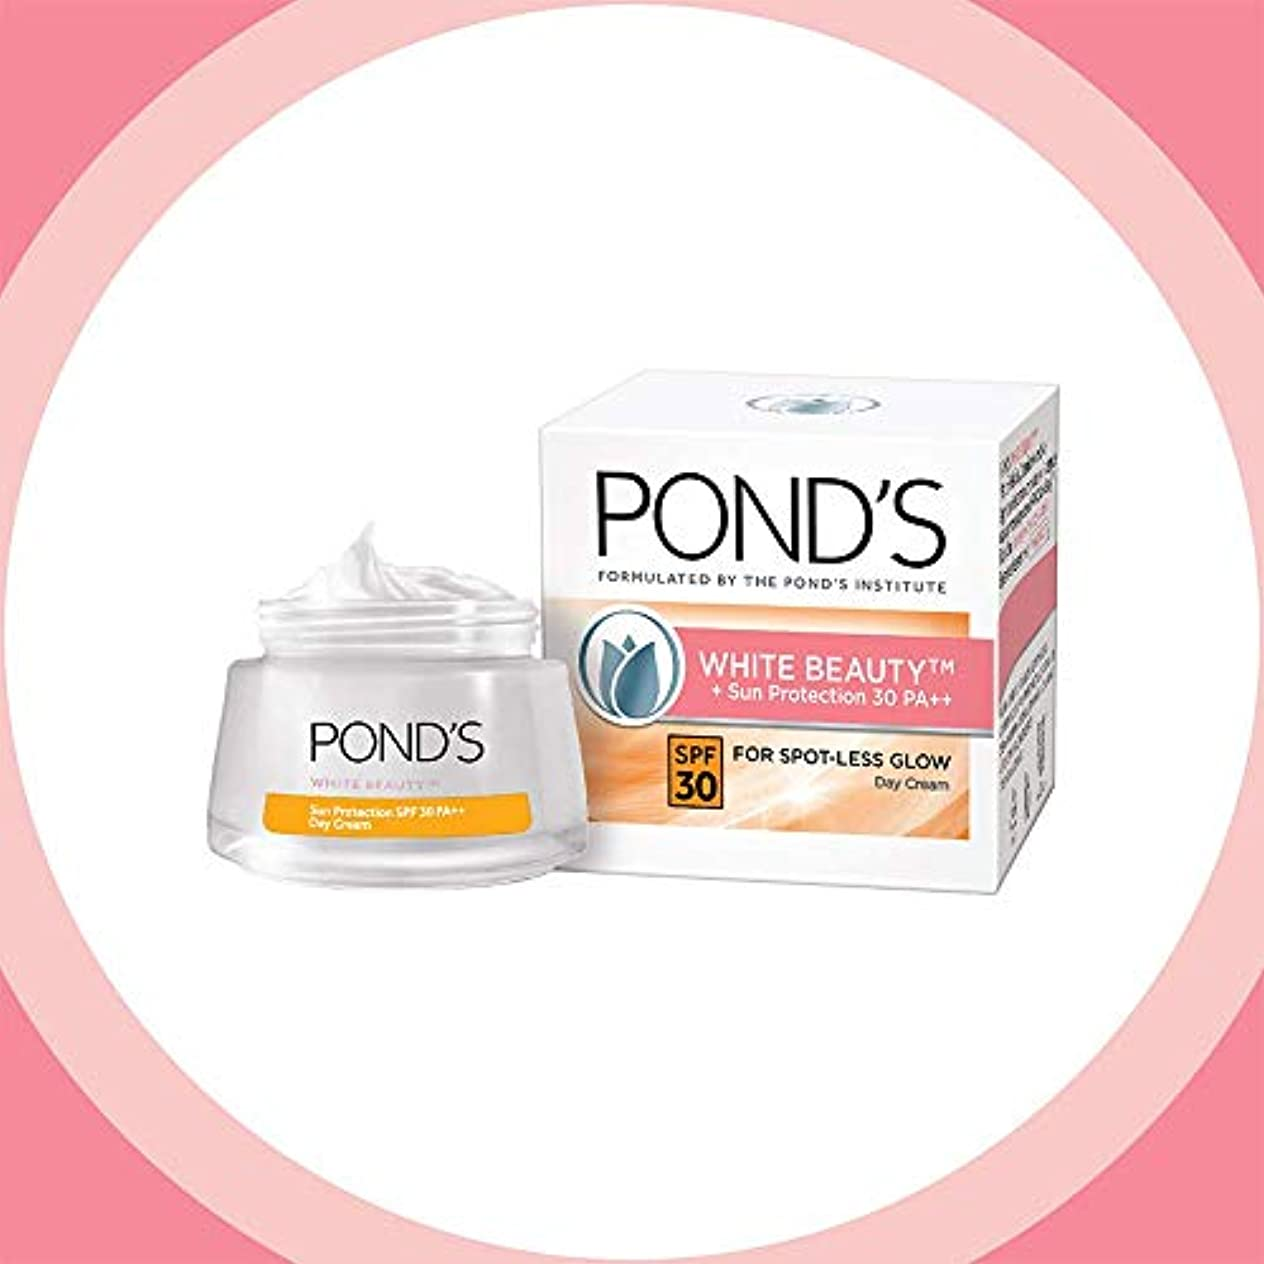 敬な橋大洪水POND'S White Beauty Sun Protection SPF 30 Day Cream, 35 gms (並行インポート) India